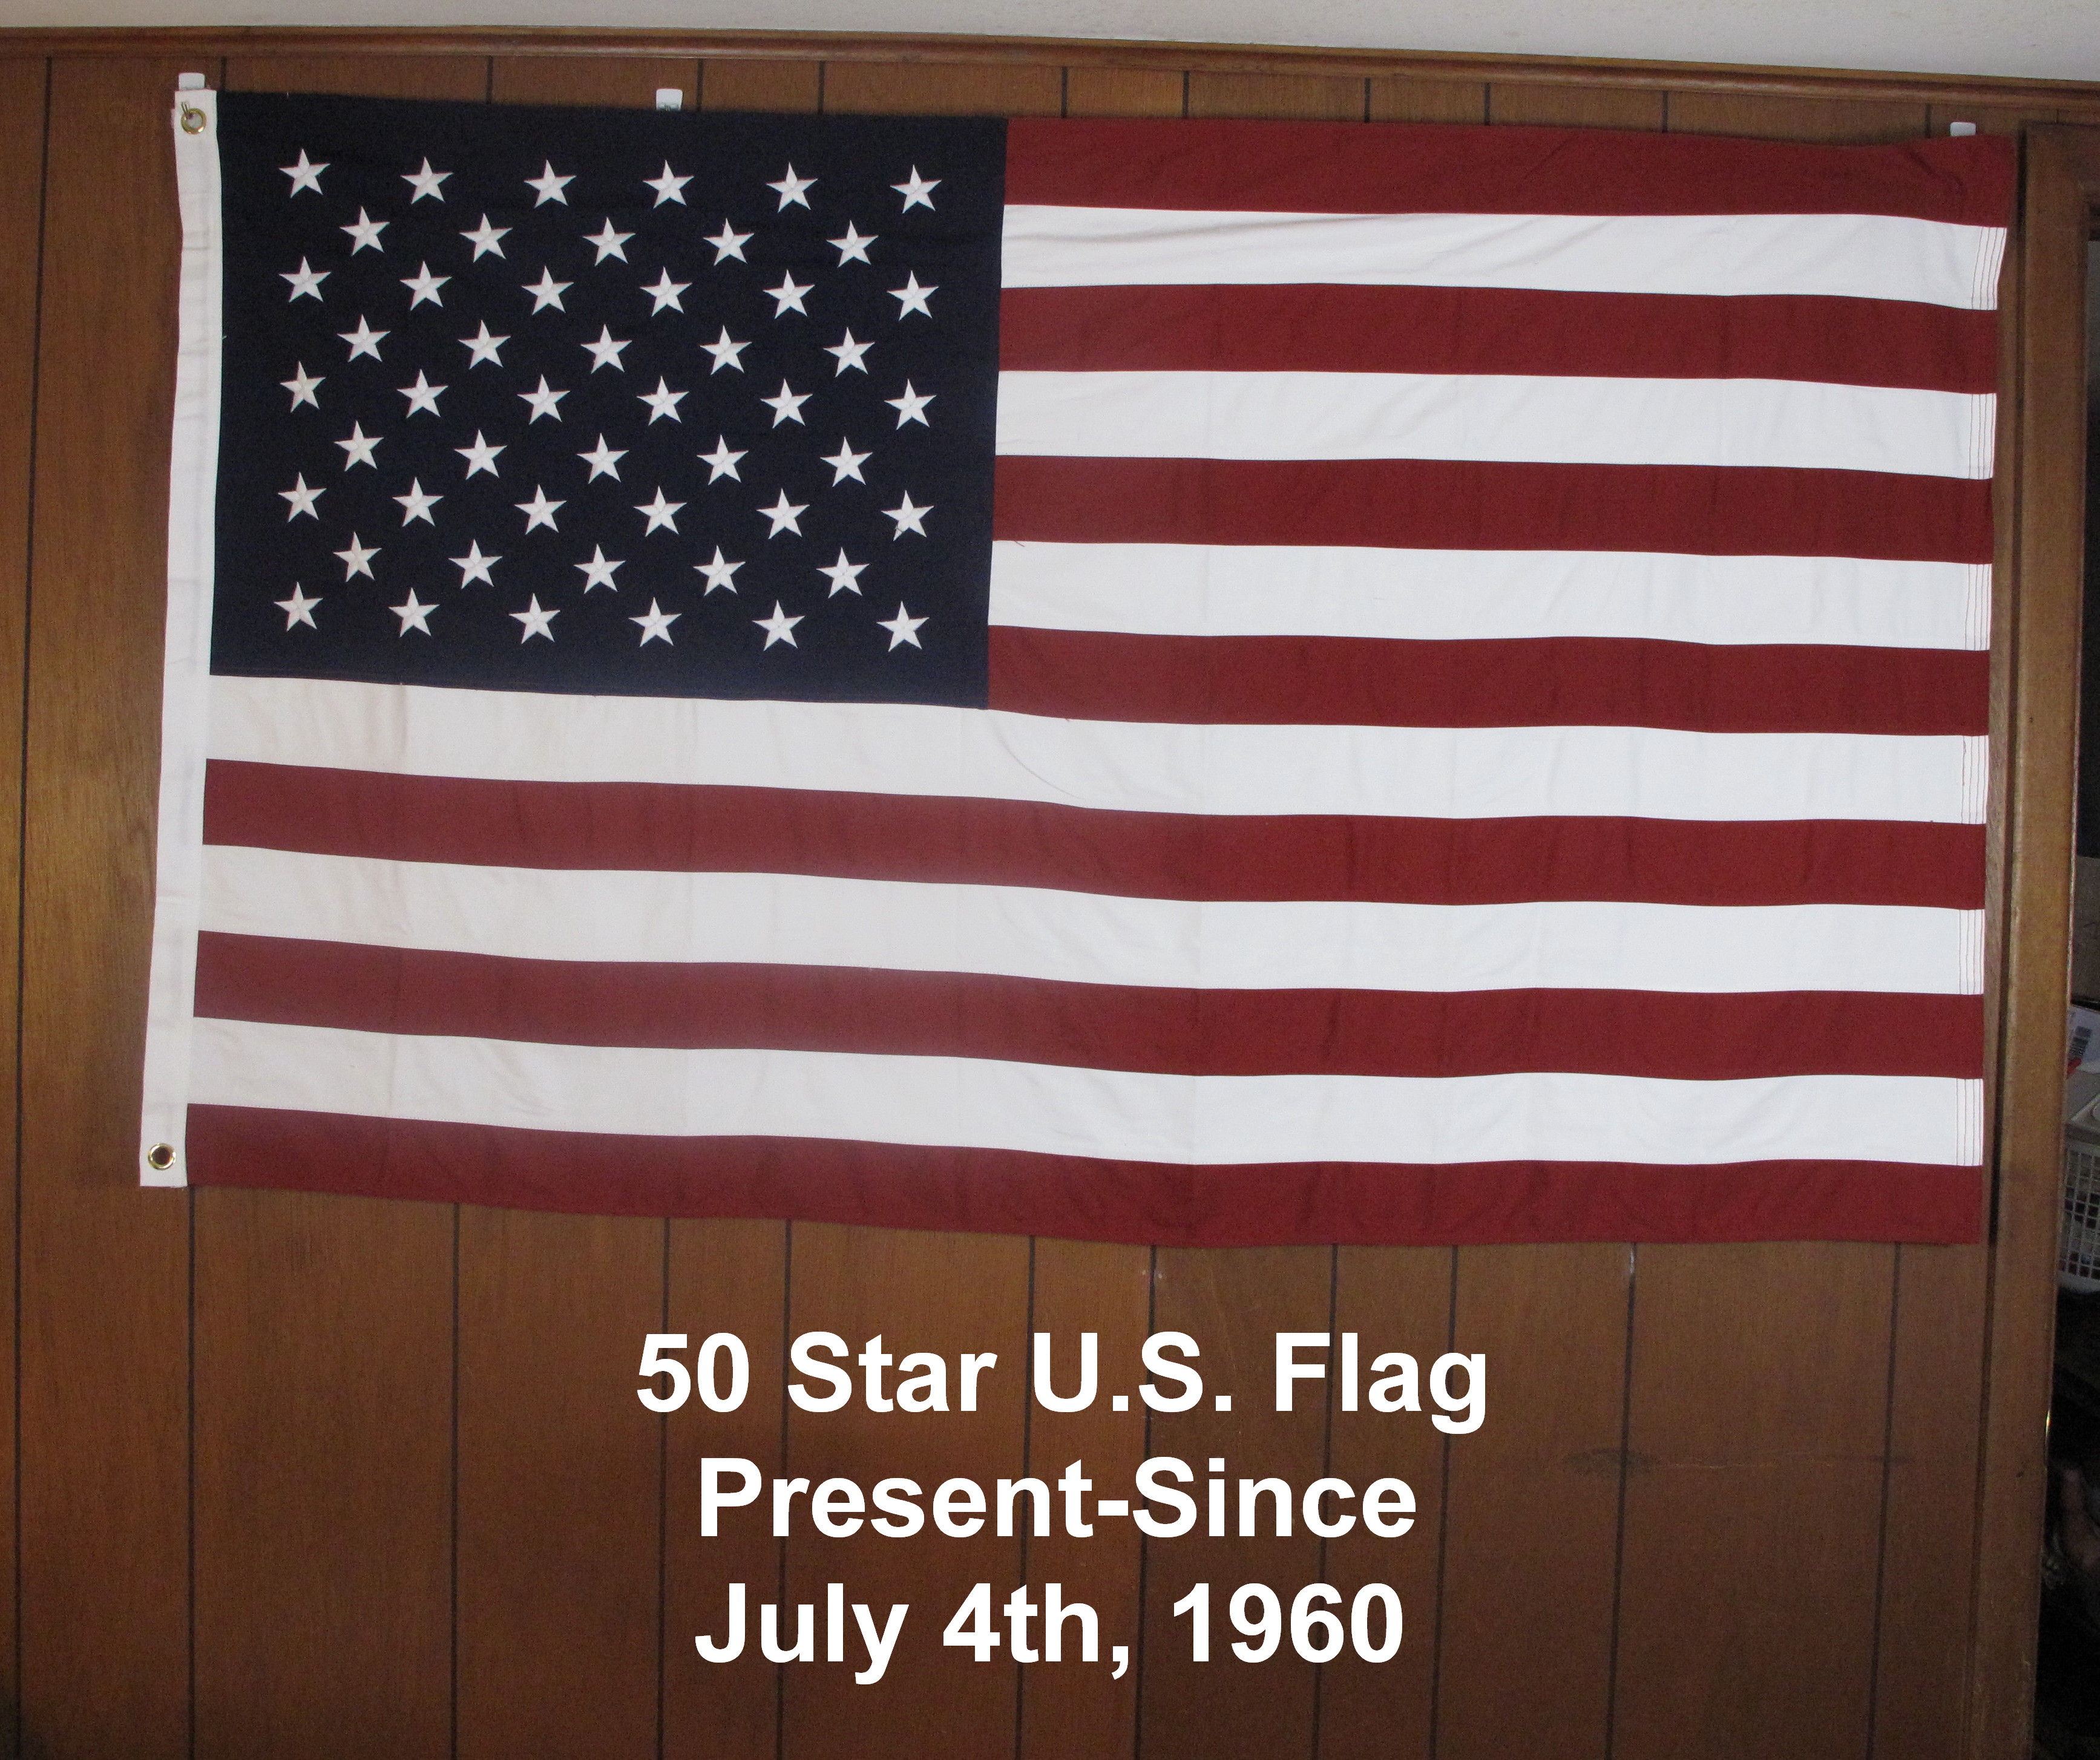 50 Star U.S. Flag--Present Day